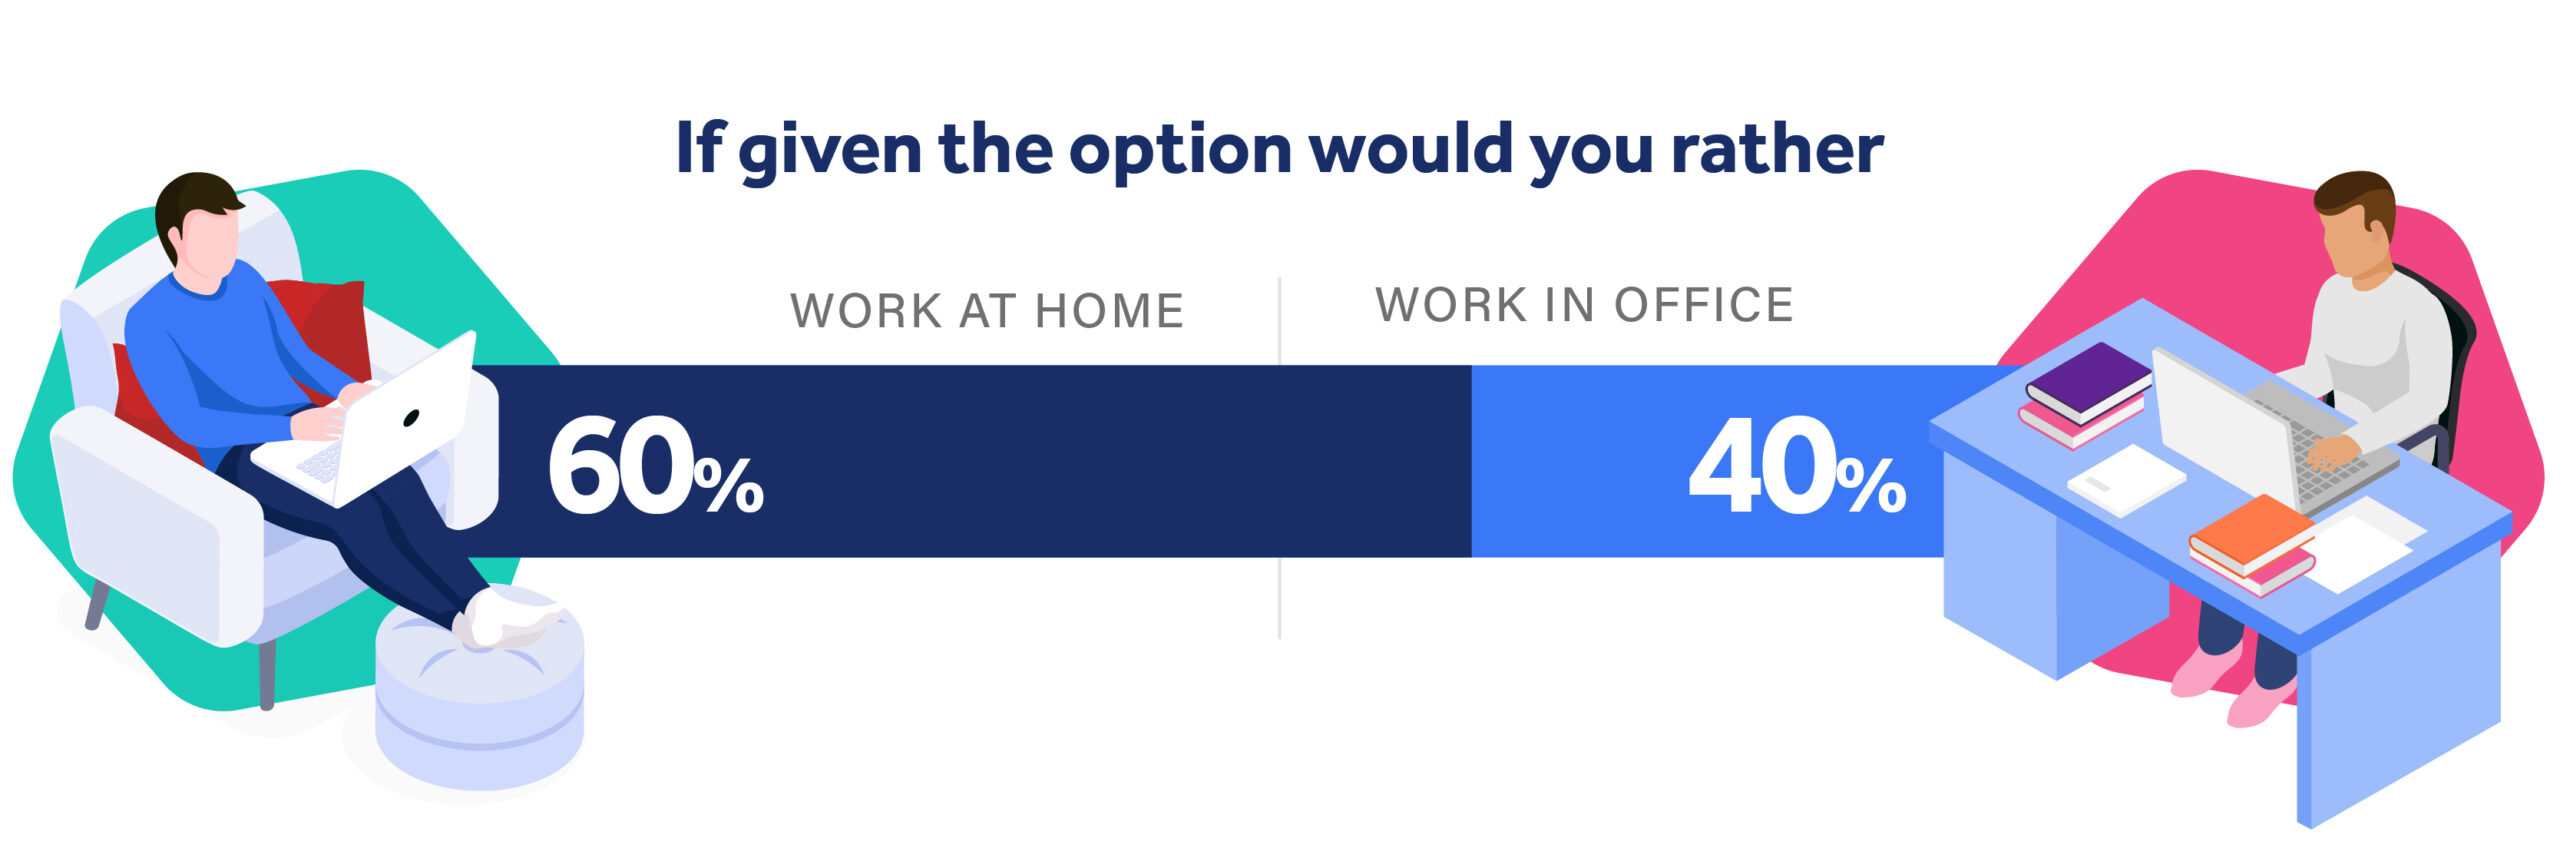 Illustration showing 60% of people want to work at home